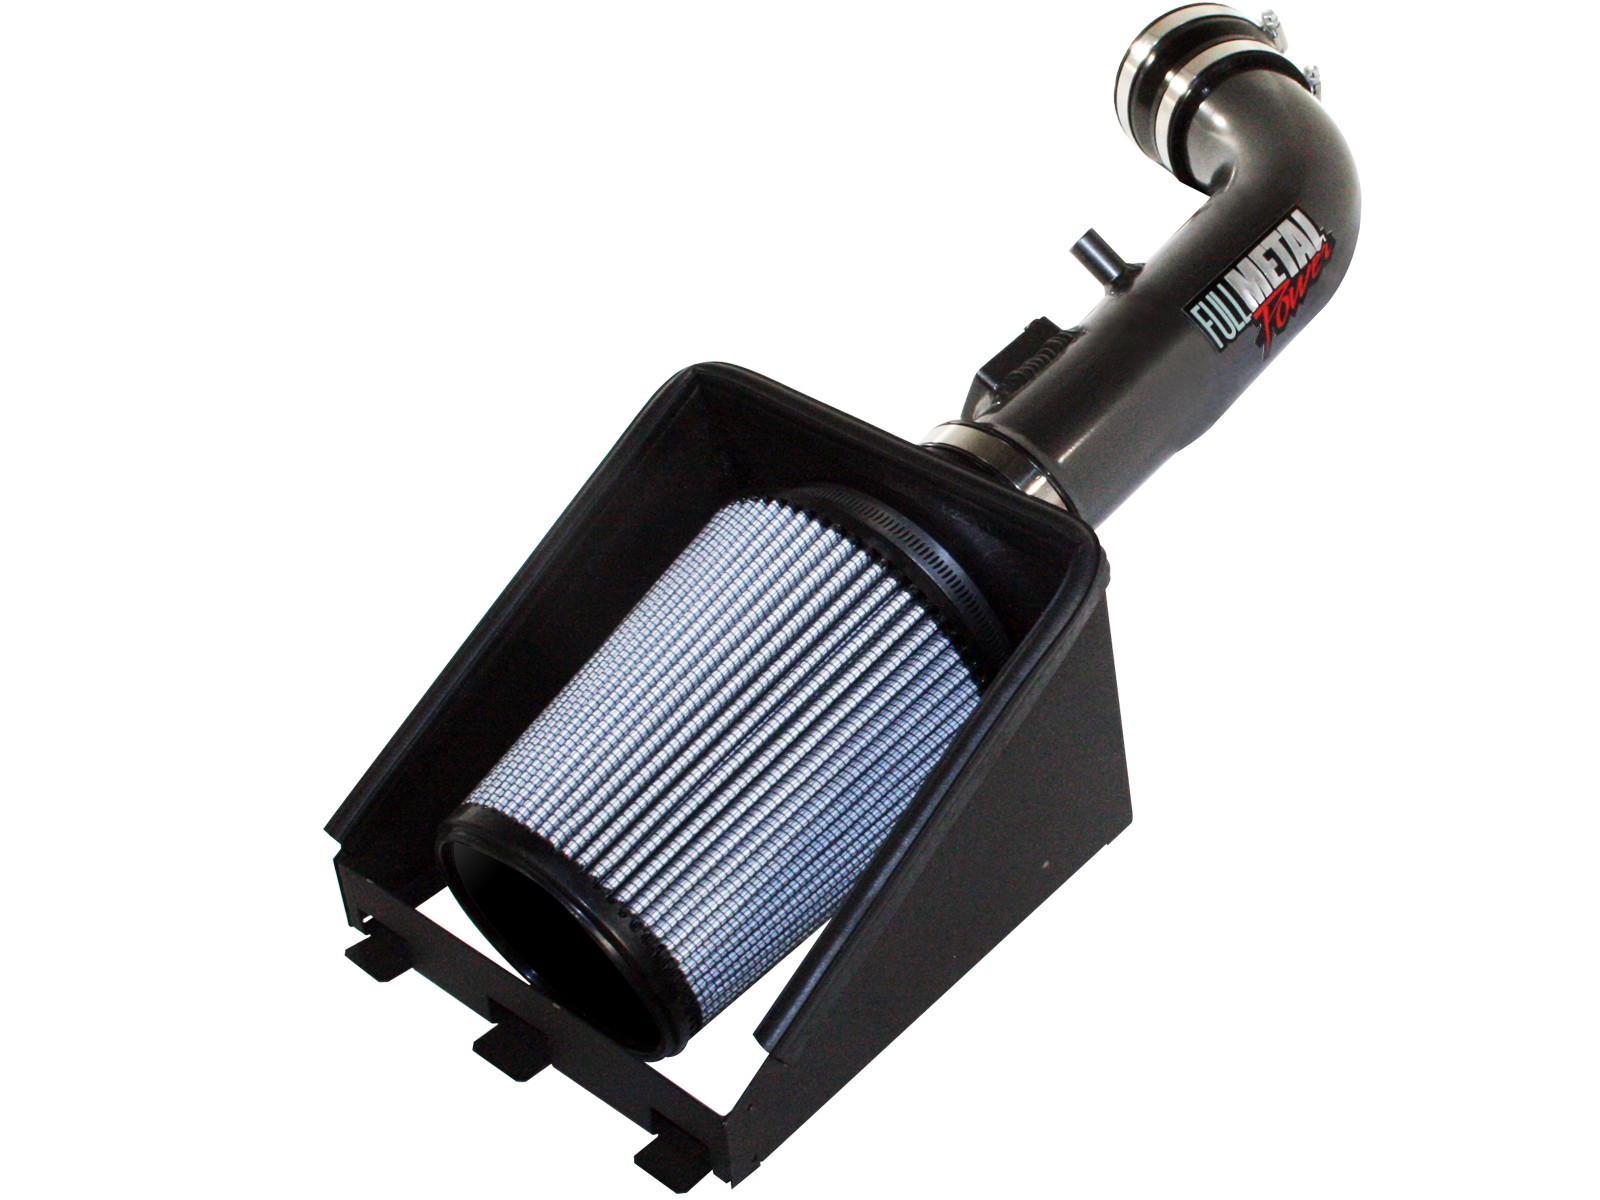 aFe POWER F2-03013 FULL METAL Power Stage-2 Pro DRY S Cold Air Intake System